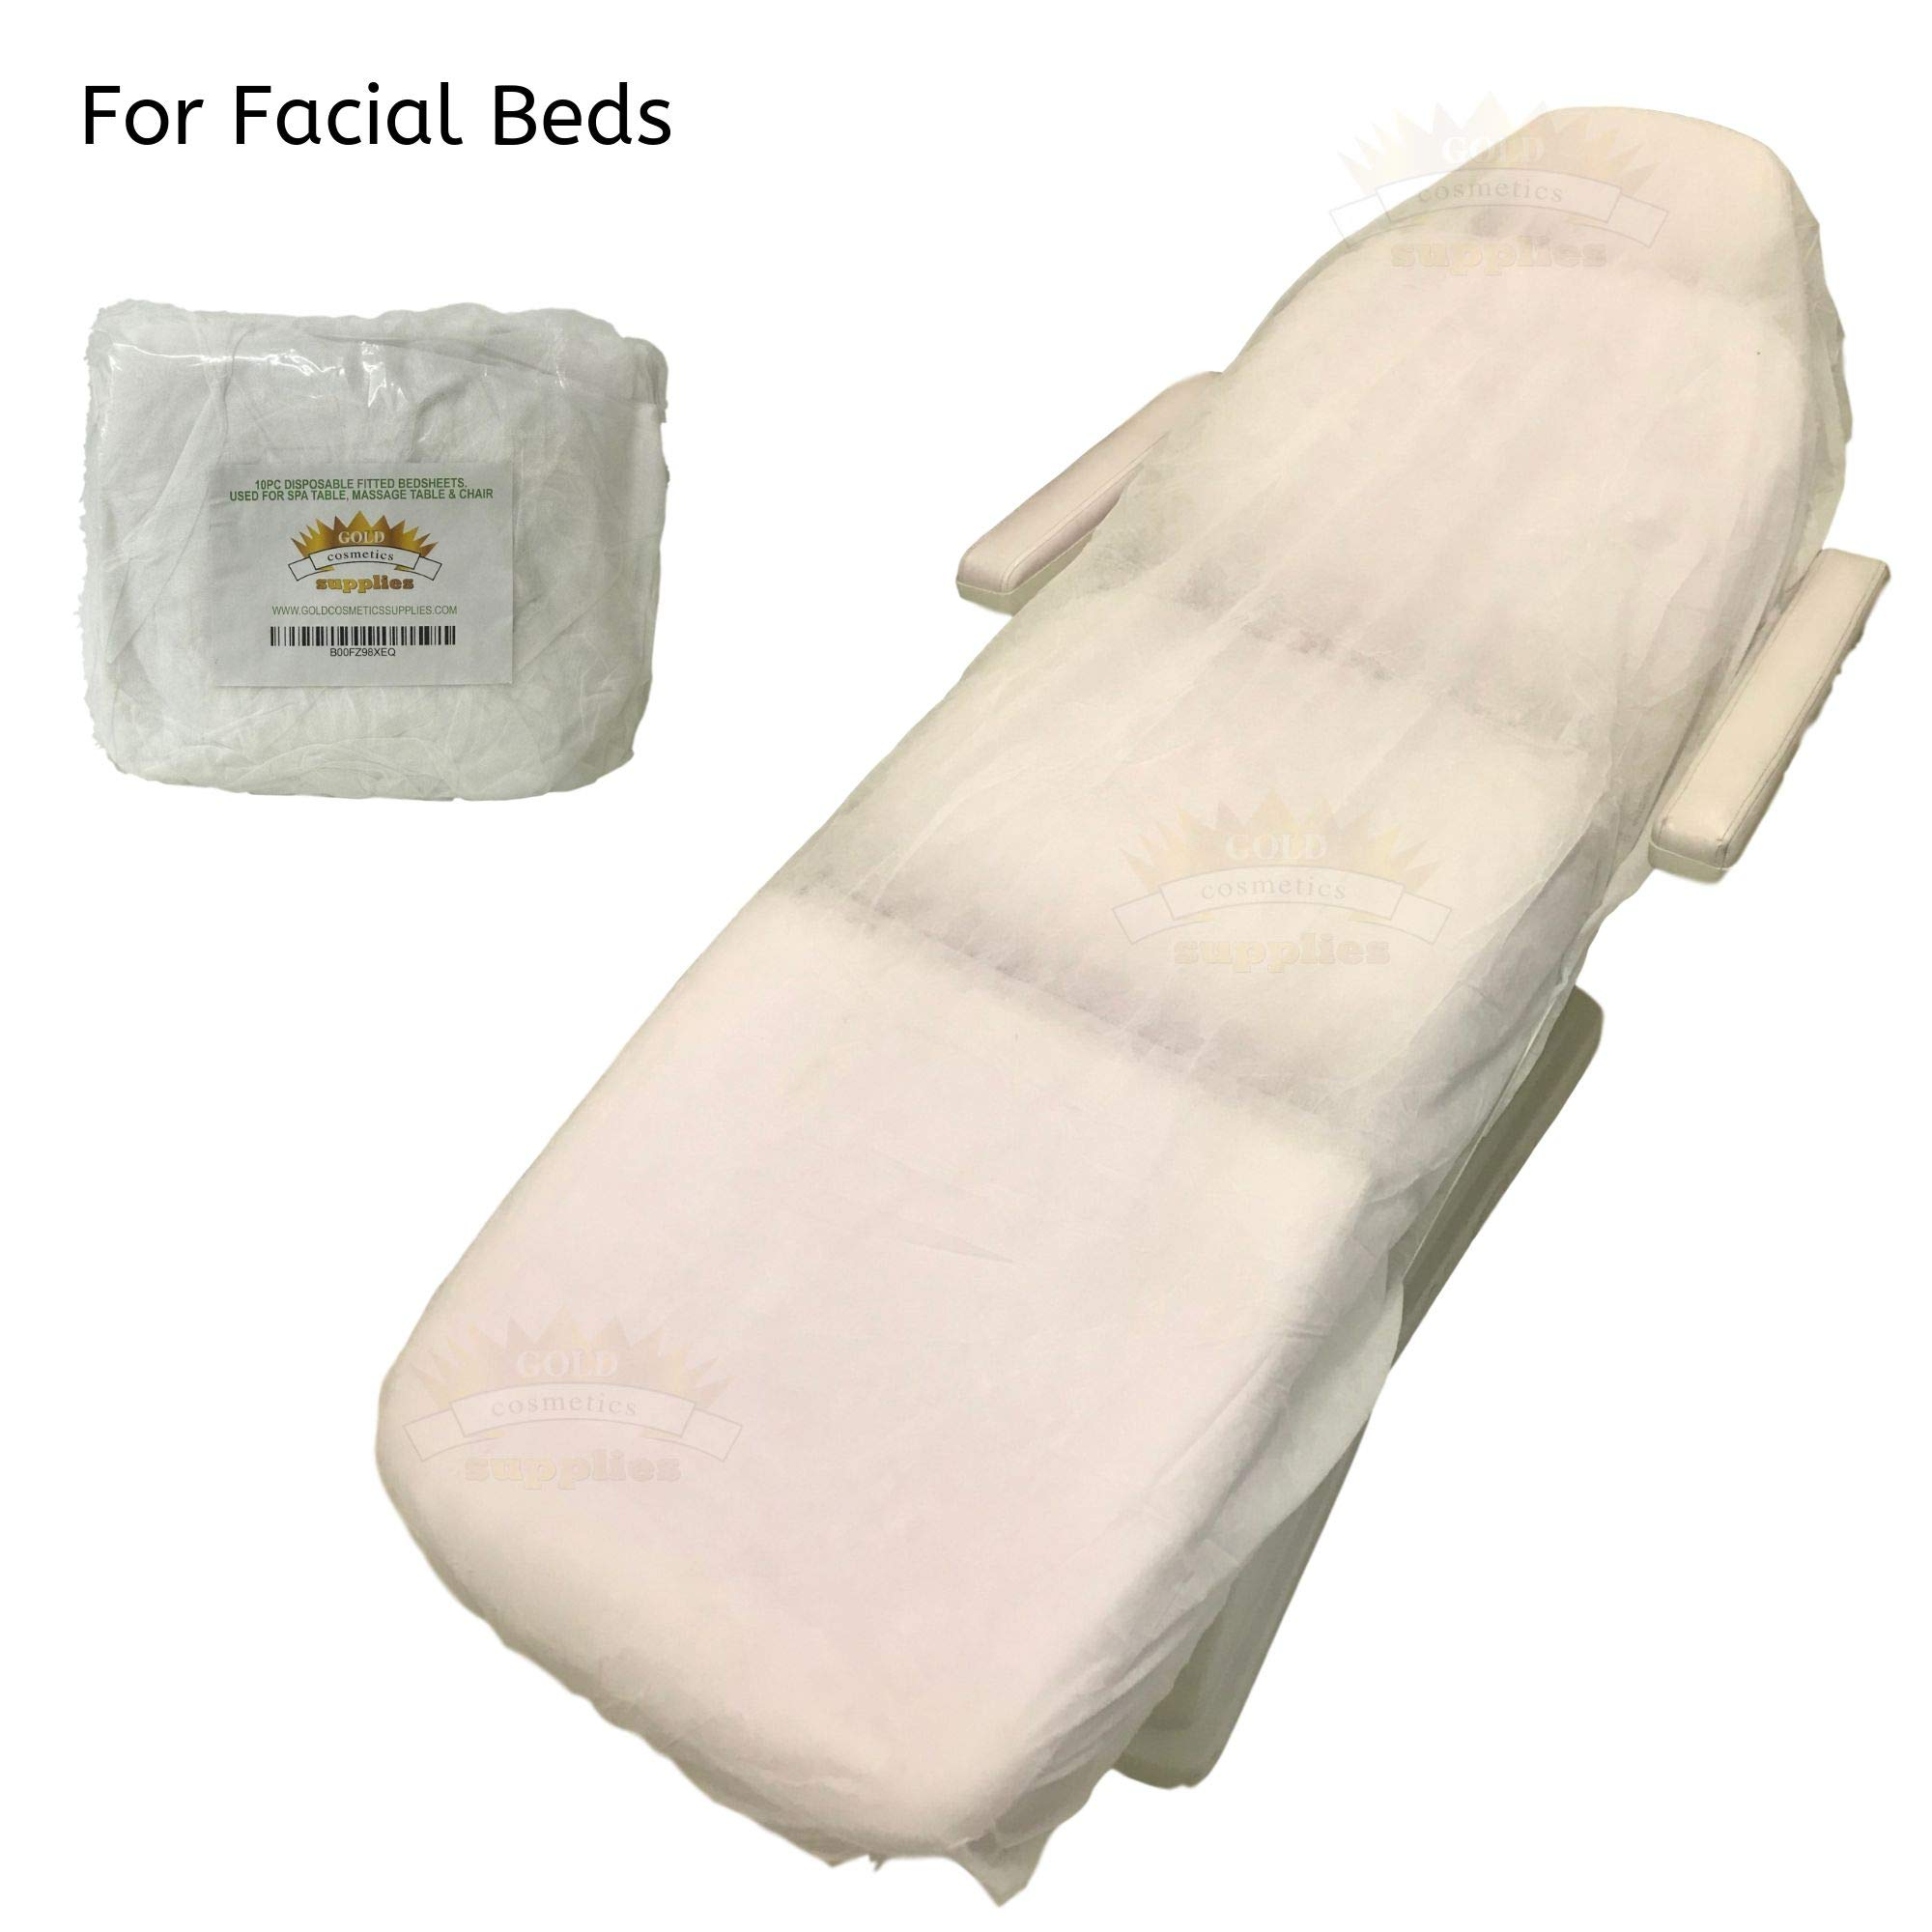 100 Ct. White Disposable Elastic Fitted Bed Sheets for Cover Massage Table Facial Chair Spa by Gold Cosmetics & Supplies